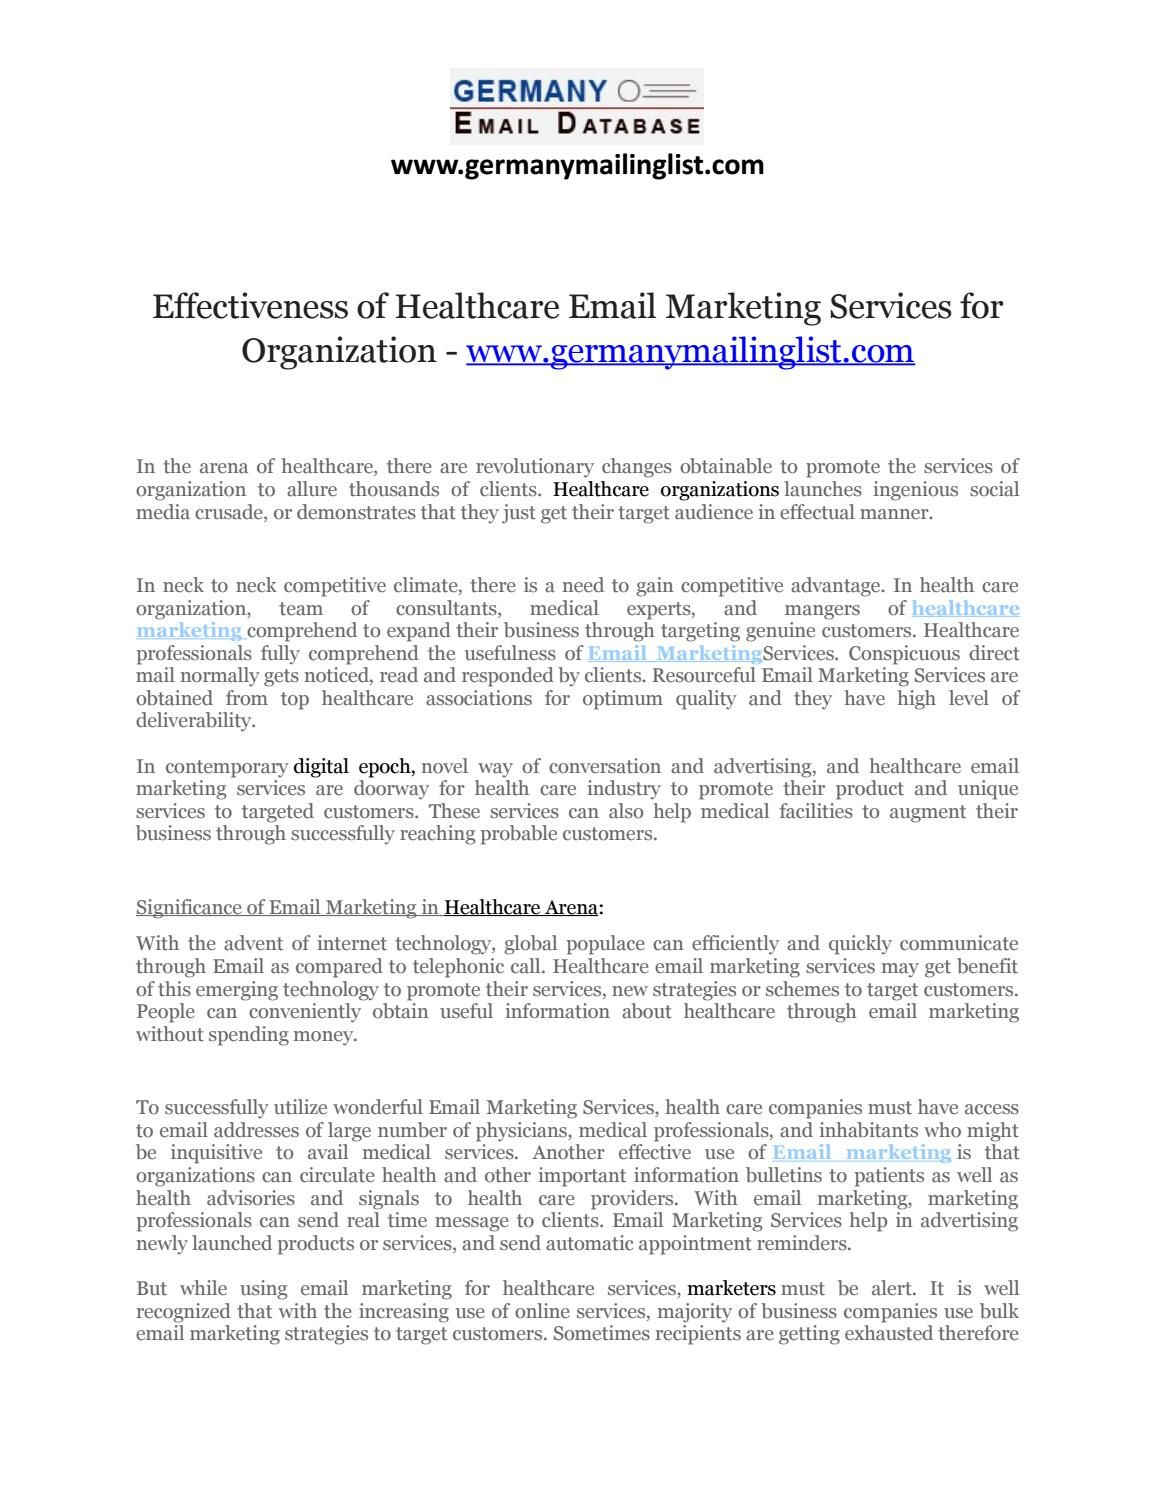 Effectiveness of Healthcare Email Marketing Services for